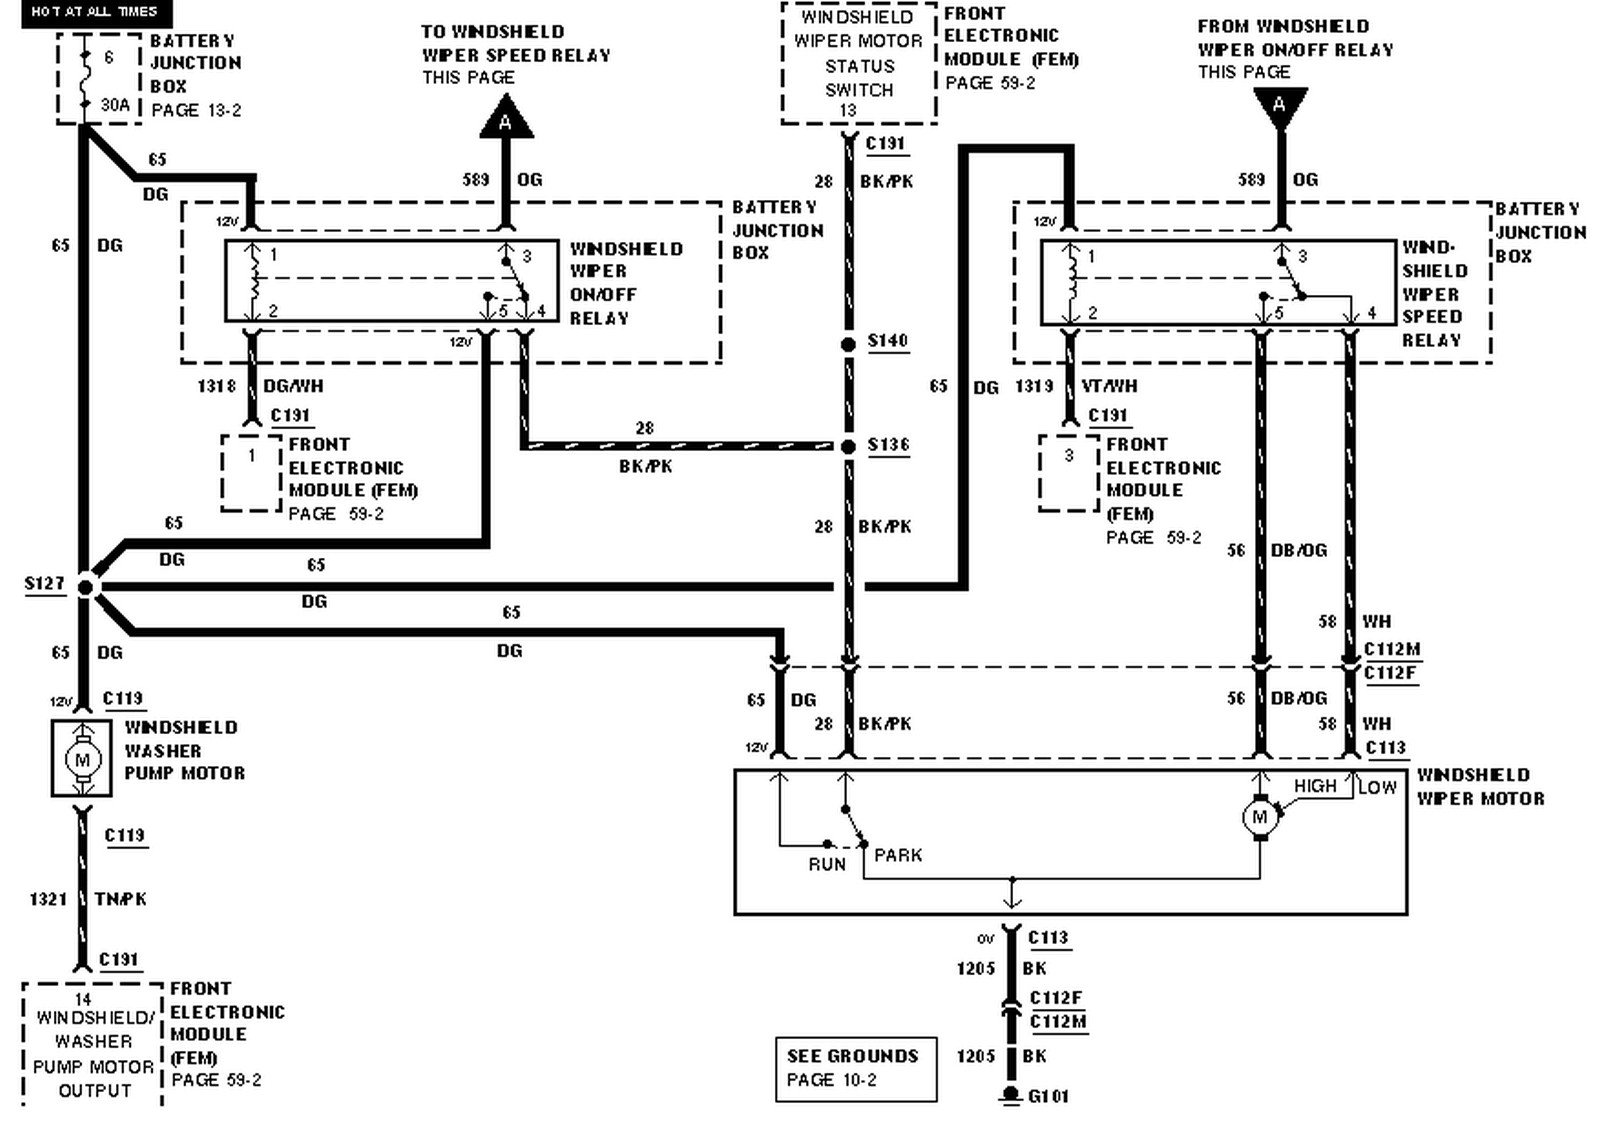 2000 Ford Windstar Electrical Diagram